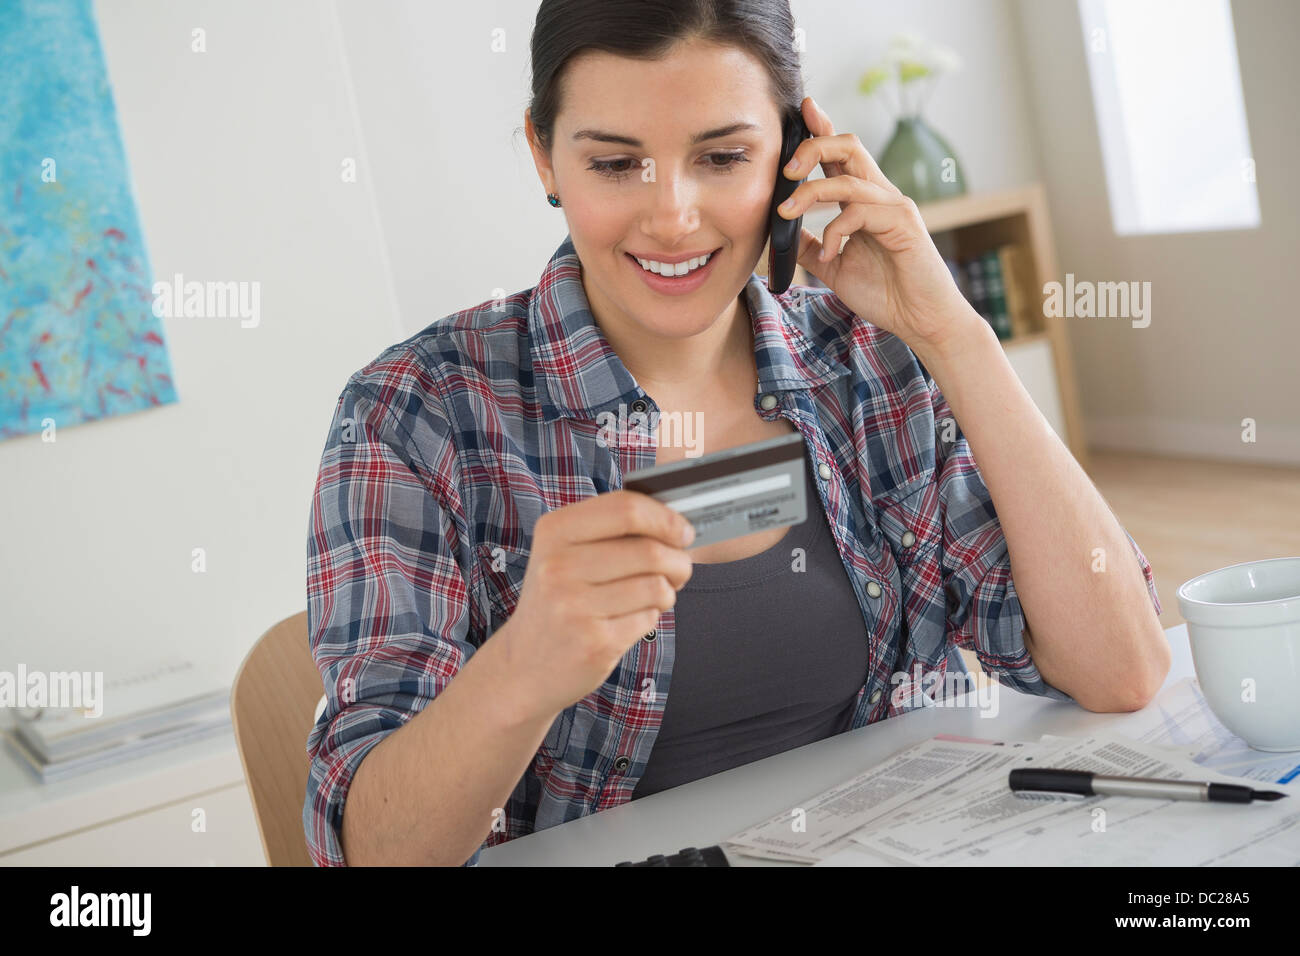 Young woman on cell phone with credit card - Stock Image